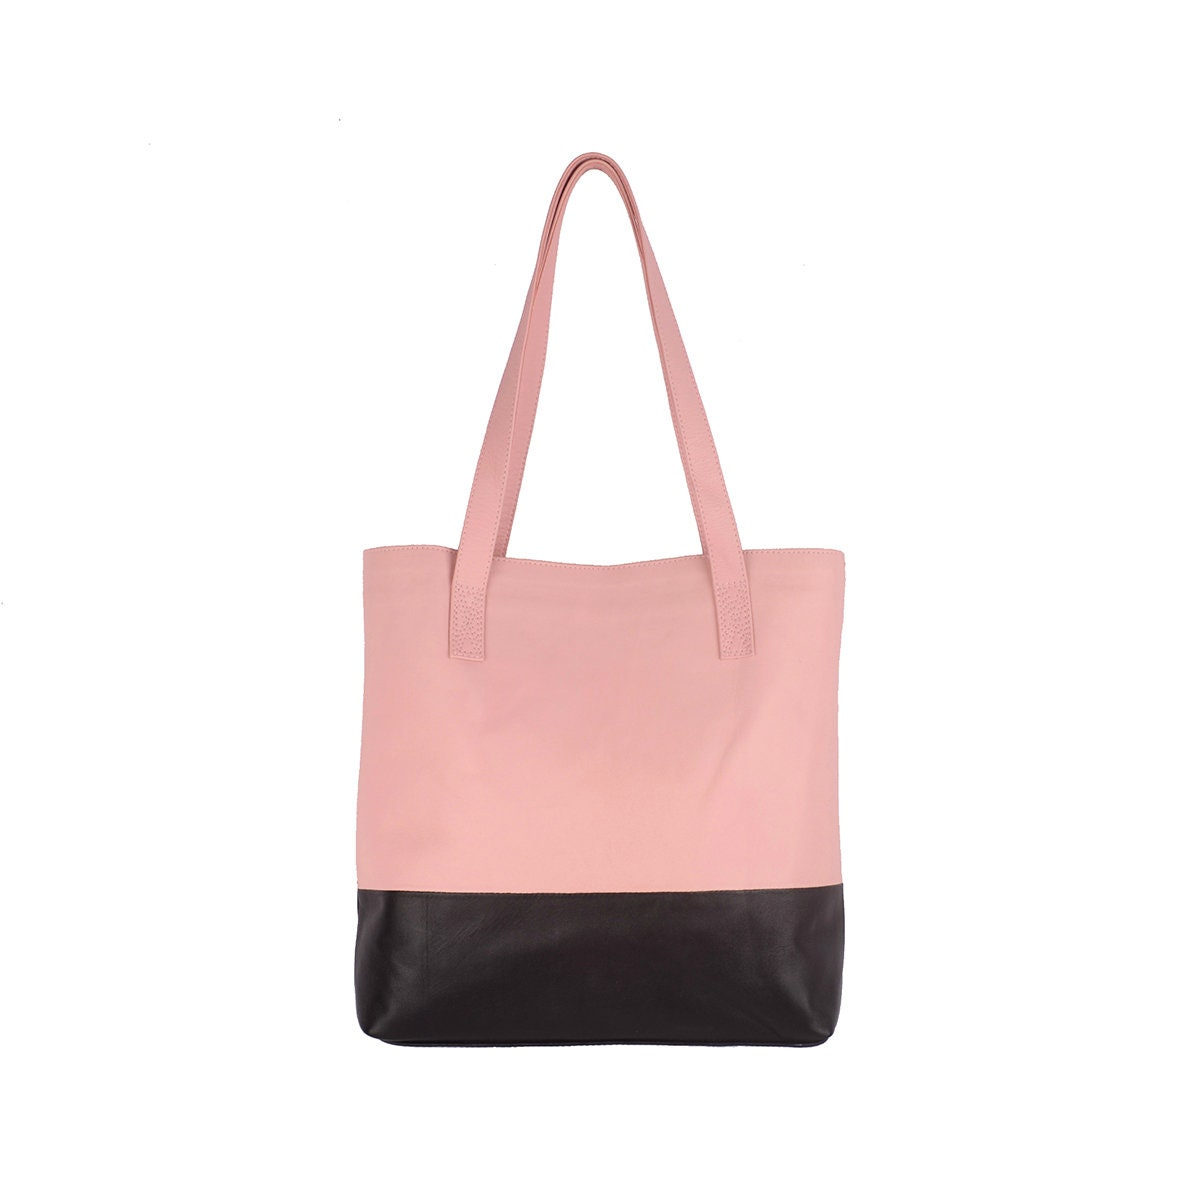 89122a21888 LUSH- Leather Tote Bag / shoulder bag / planner bag. Available in different  colors.